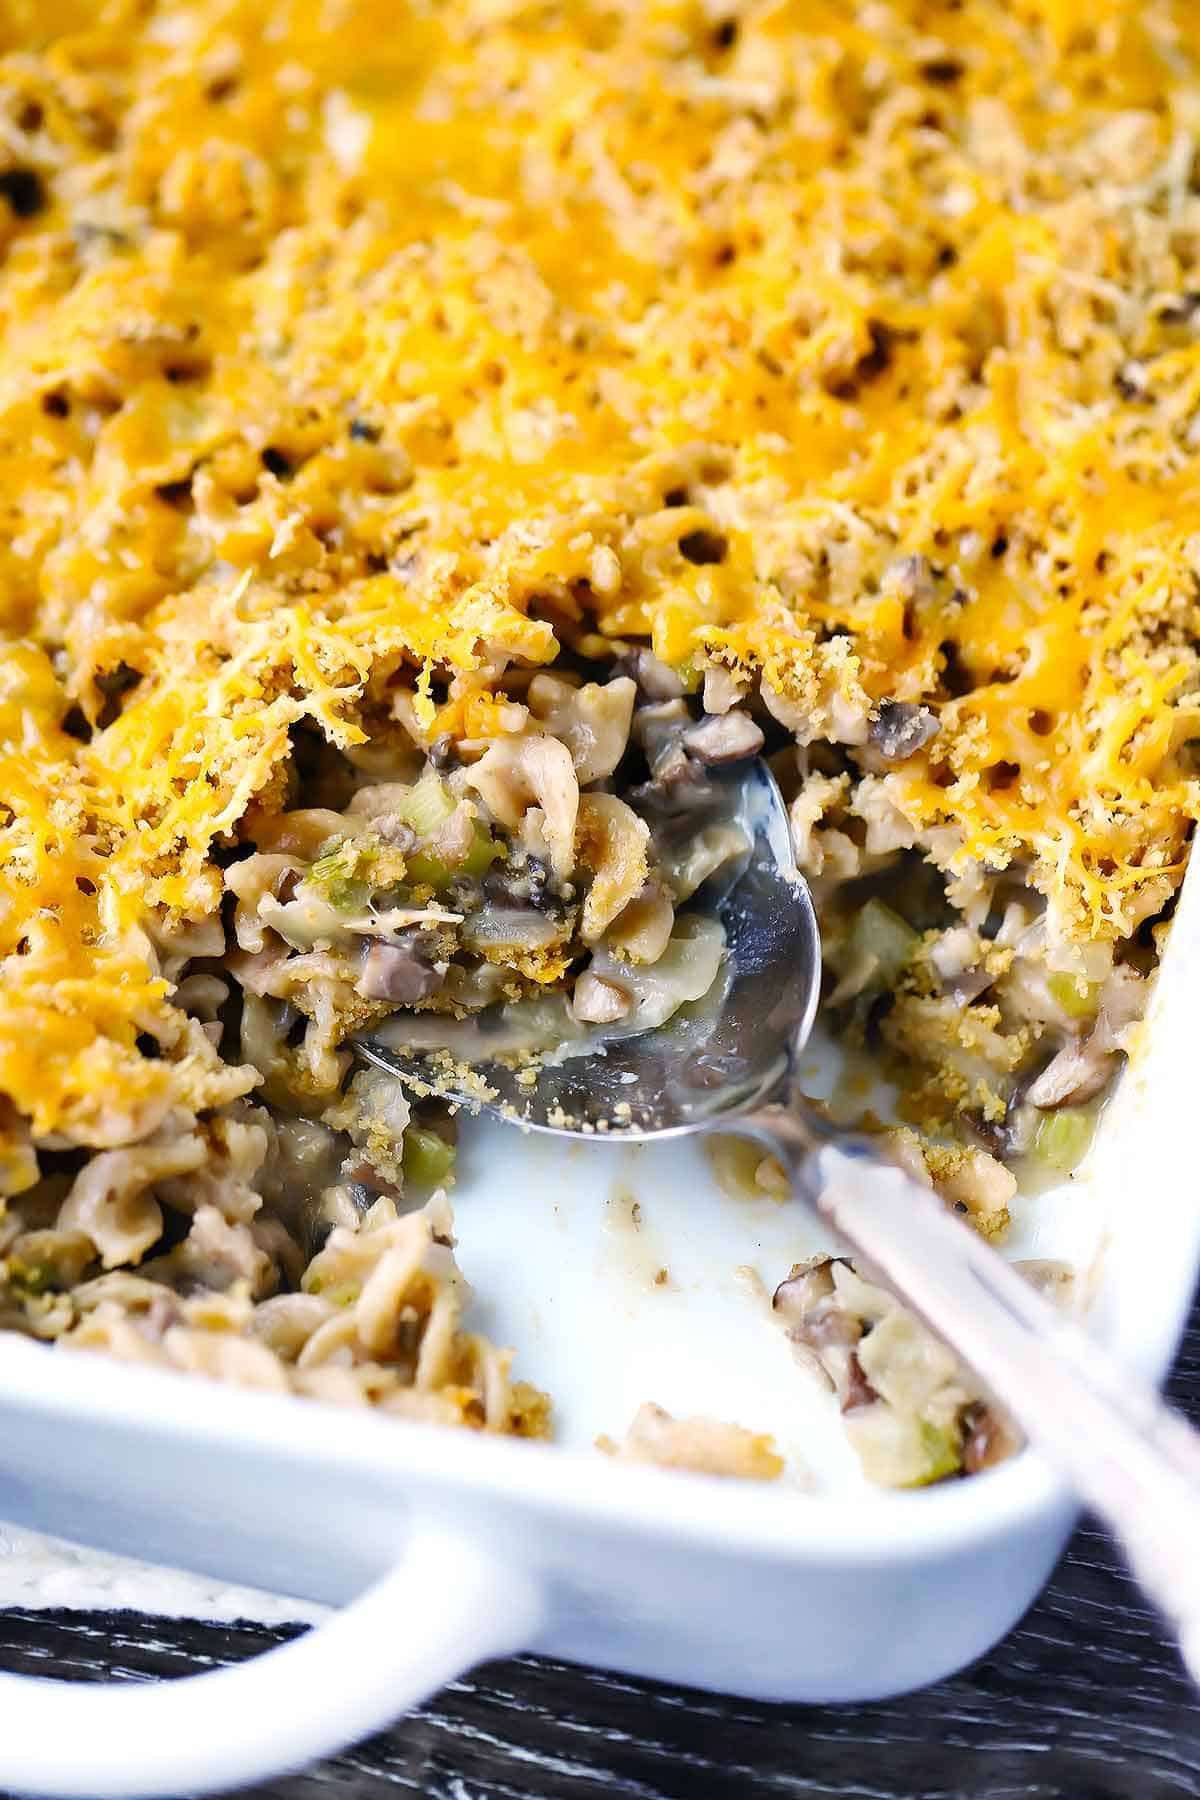 Tuna casserole from scratch in a casserole dish.